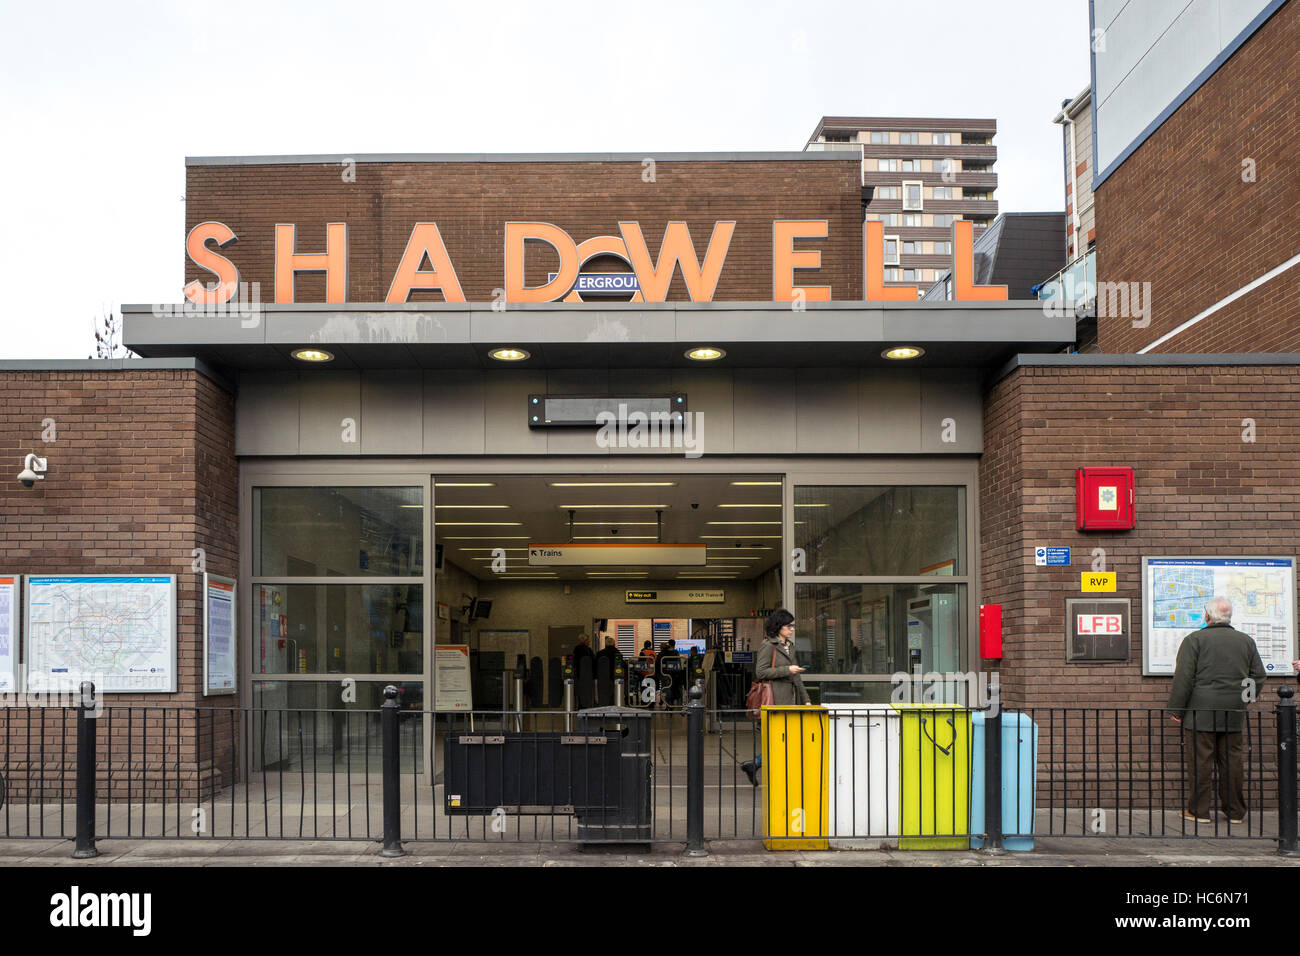 Shadwell Overground Station Cable Street entrance London - Stock Image